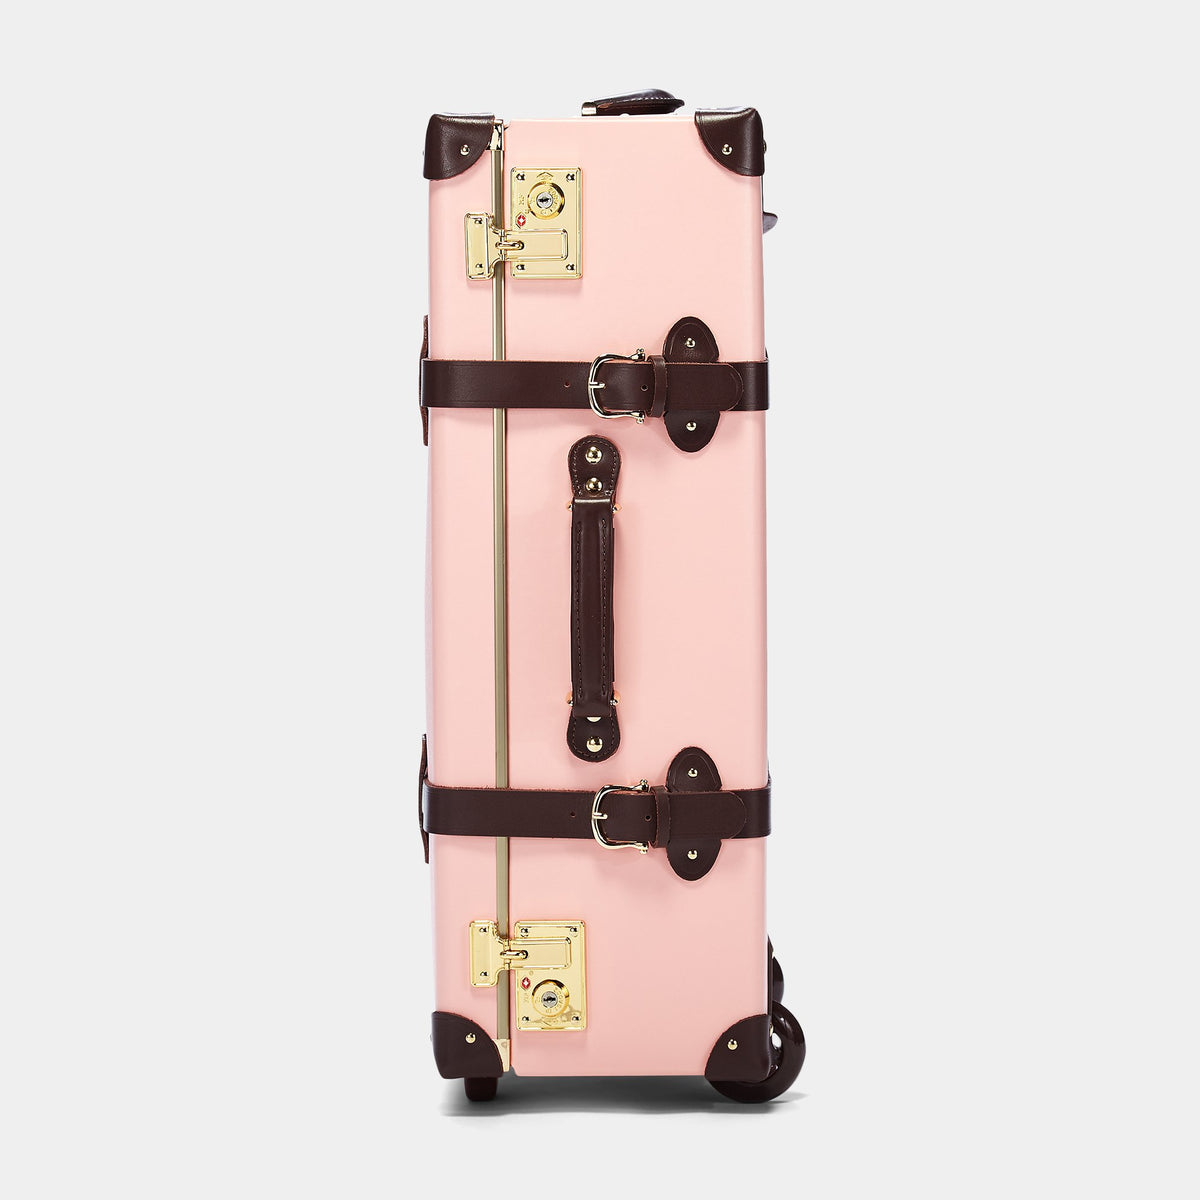 The Artiste Stowaway in Pink - Old Fashioned Suitcase - Exterior Side